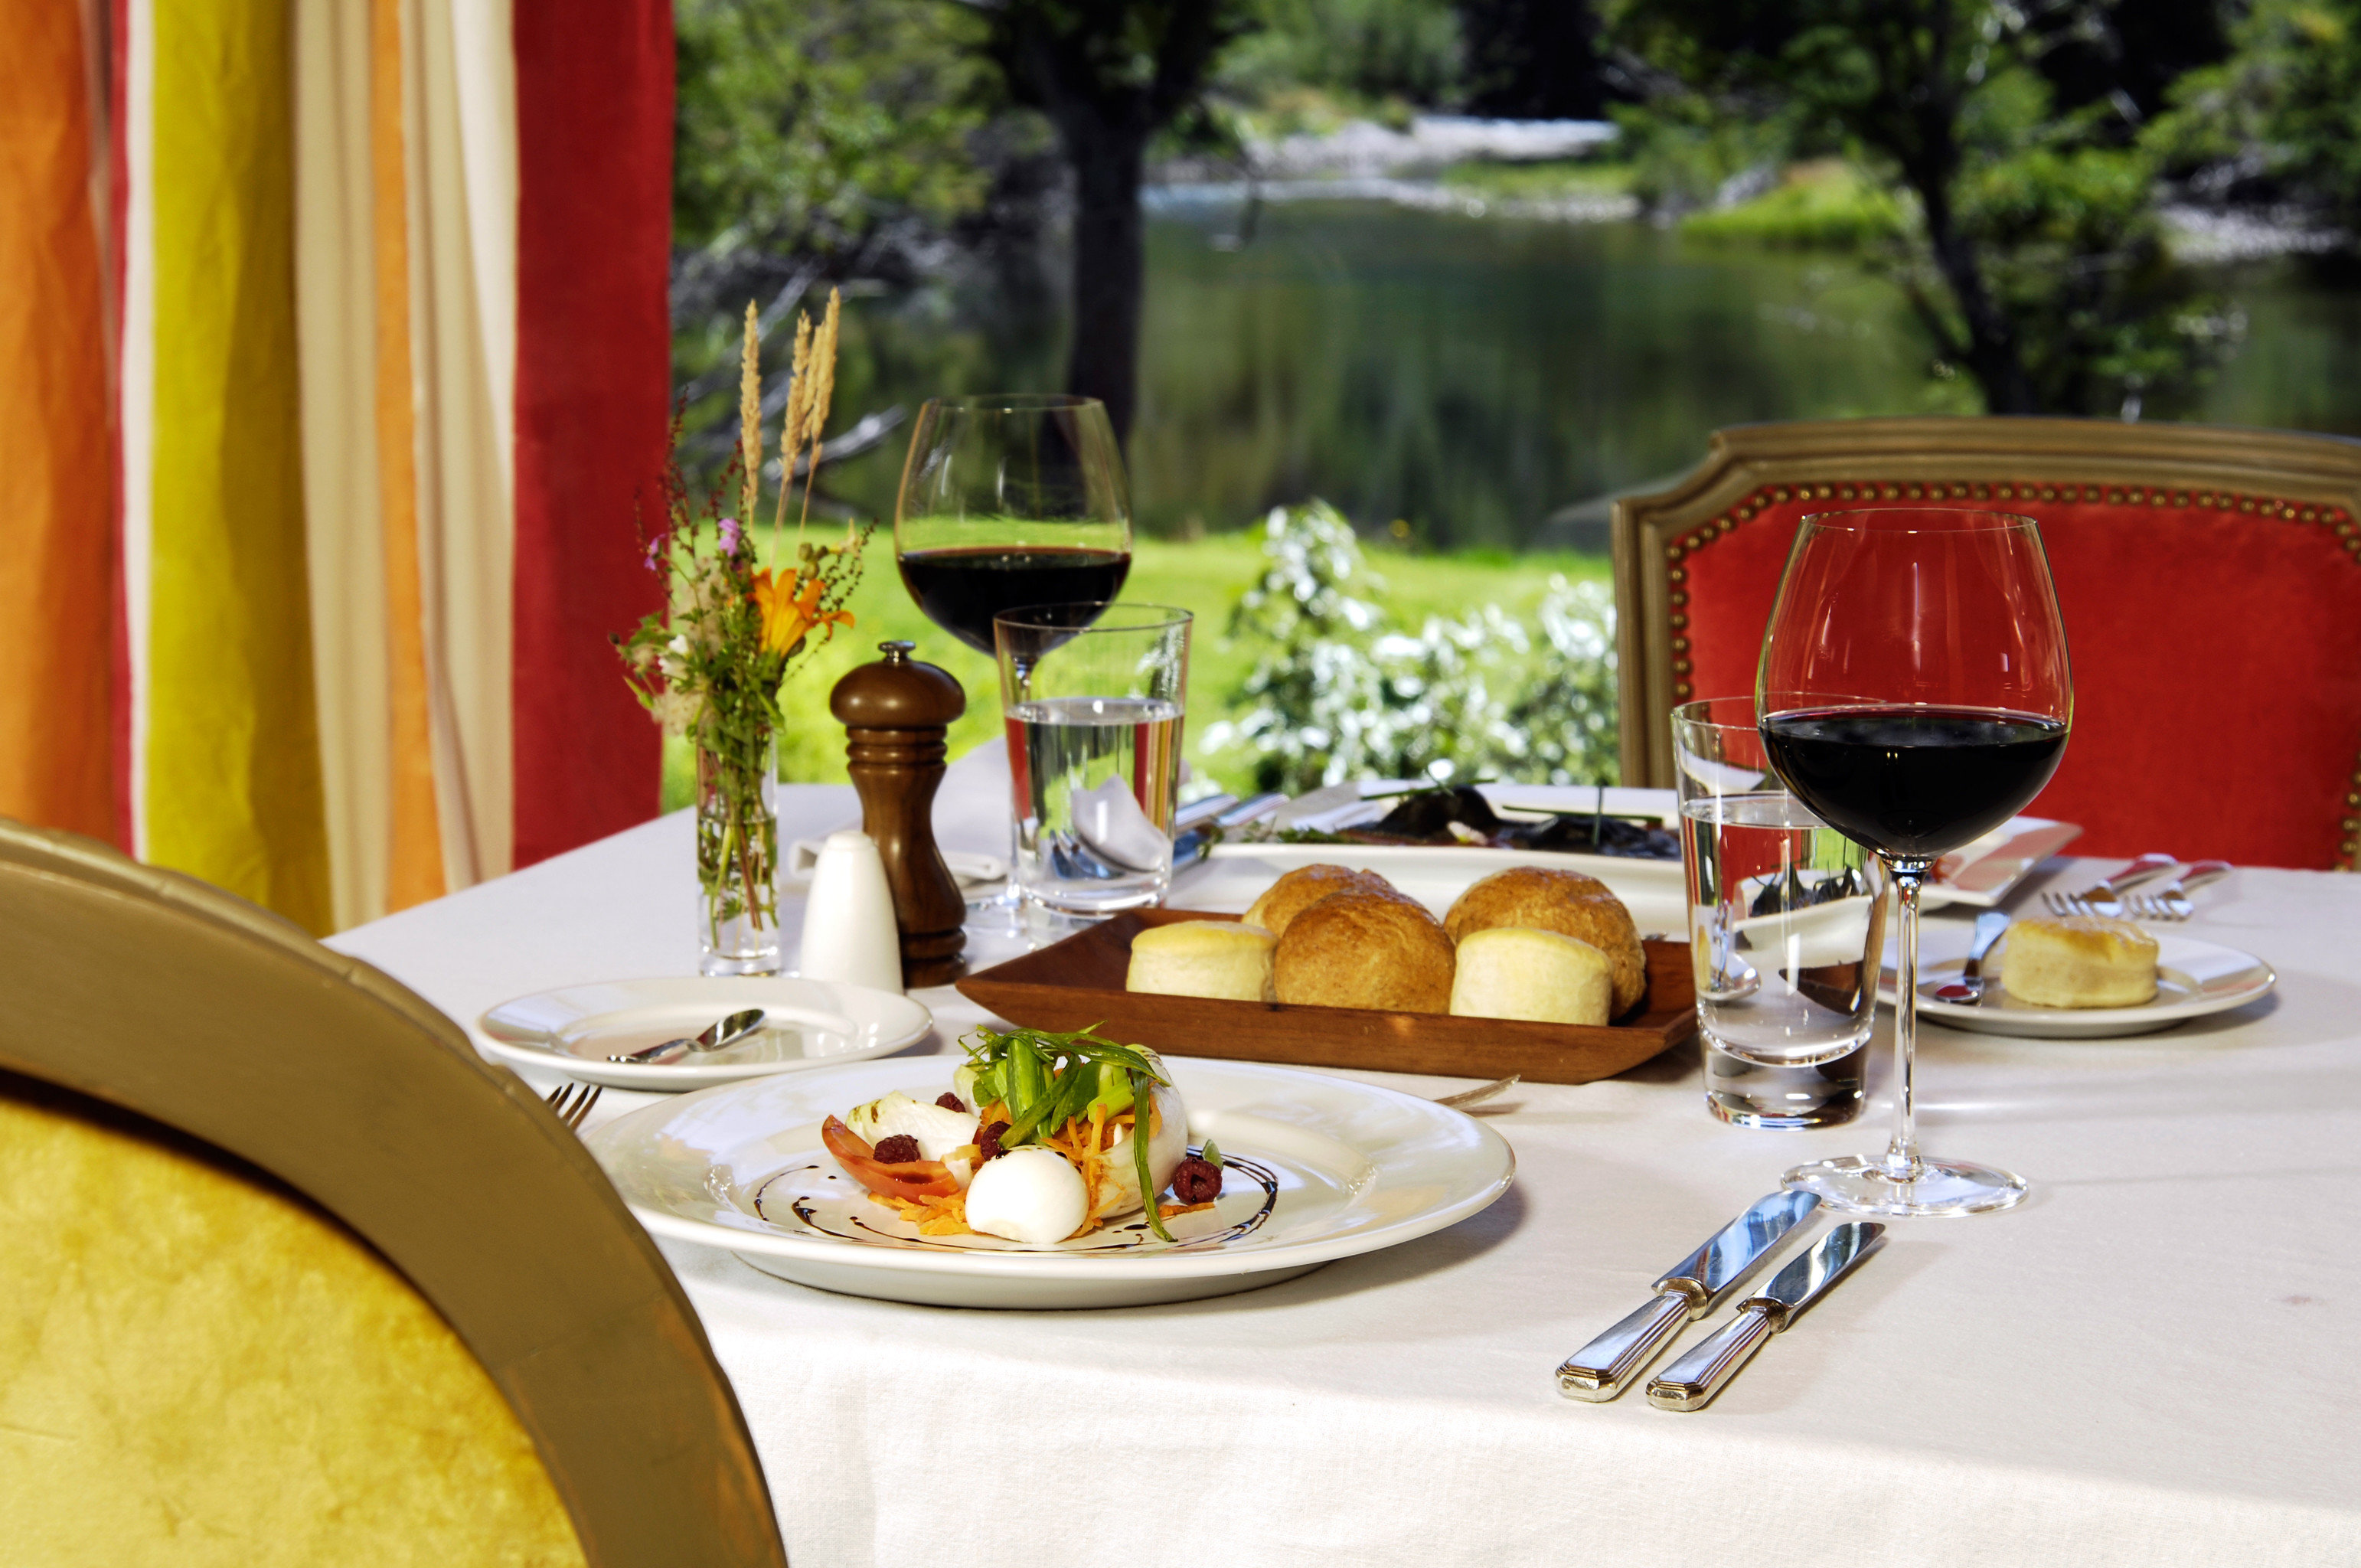 Country Cultural Dining Drink Eat Forest Mountains Nature Scenic views Wine-Tasting food wine plate restaurant lunch dinner brunch